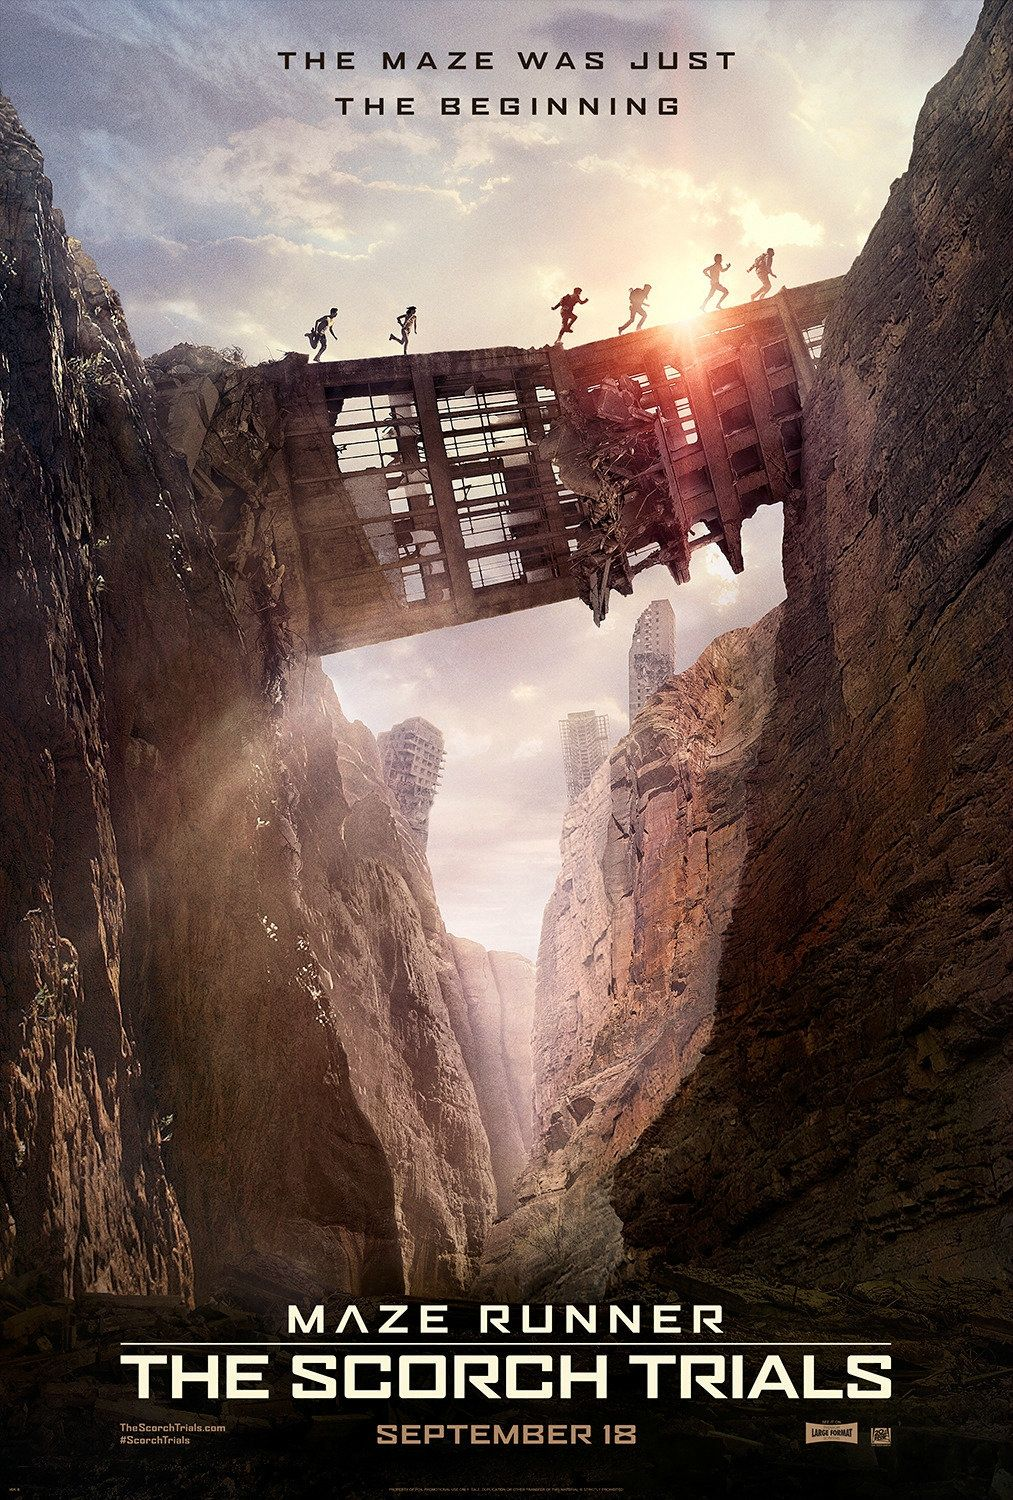 The Maze Runner The Scorch Trials. Lets hope they don't mess it up too bad!